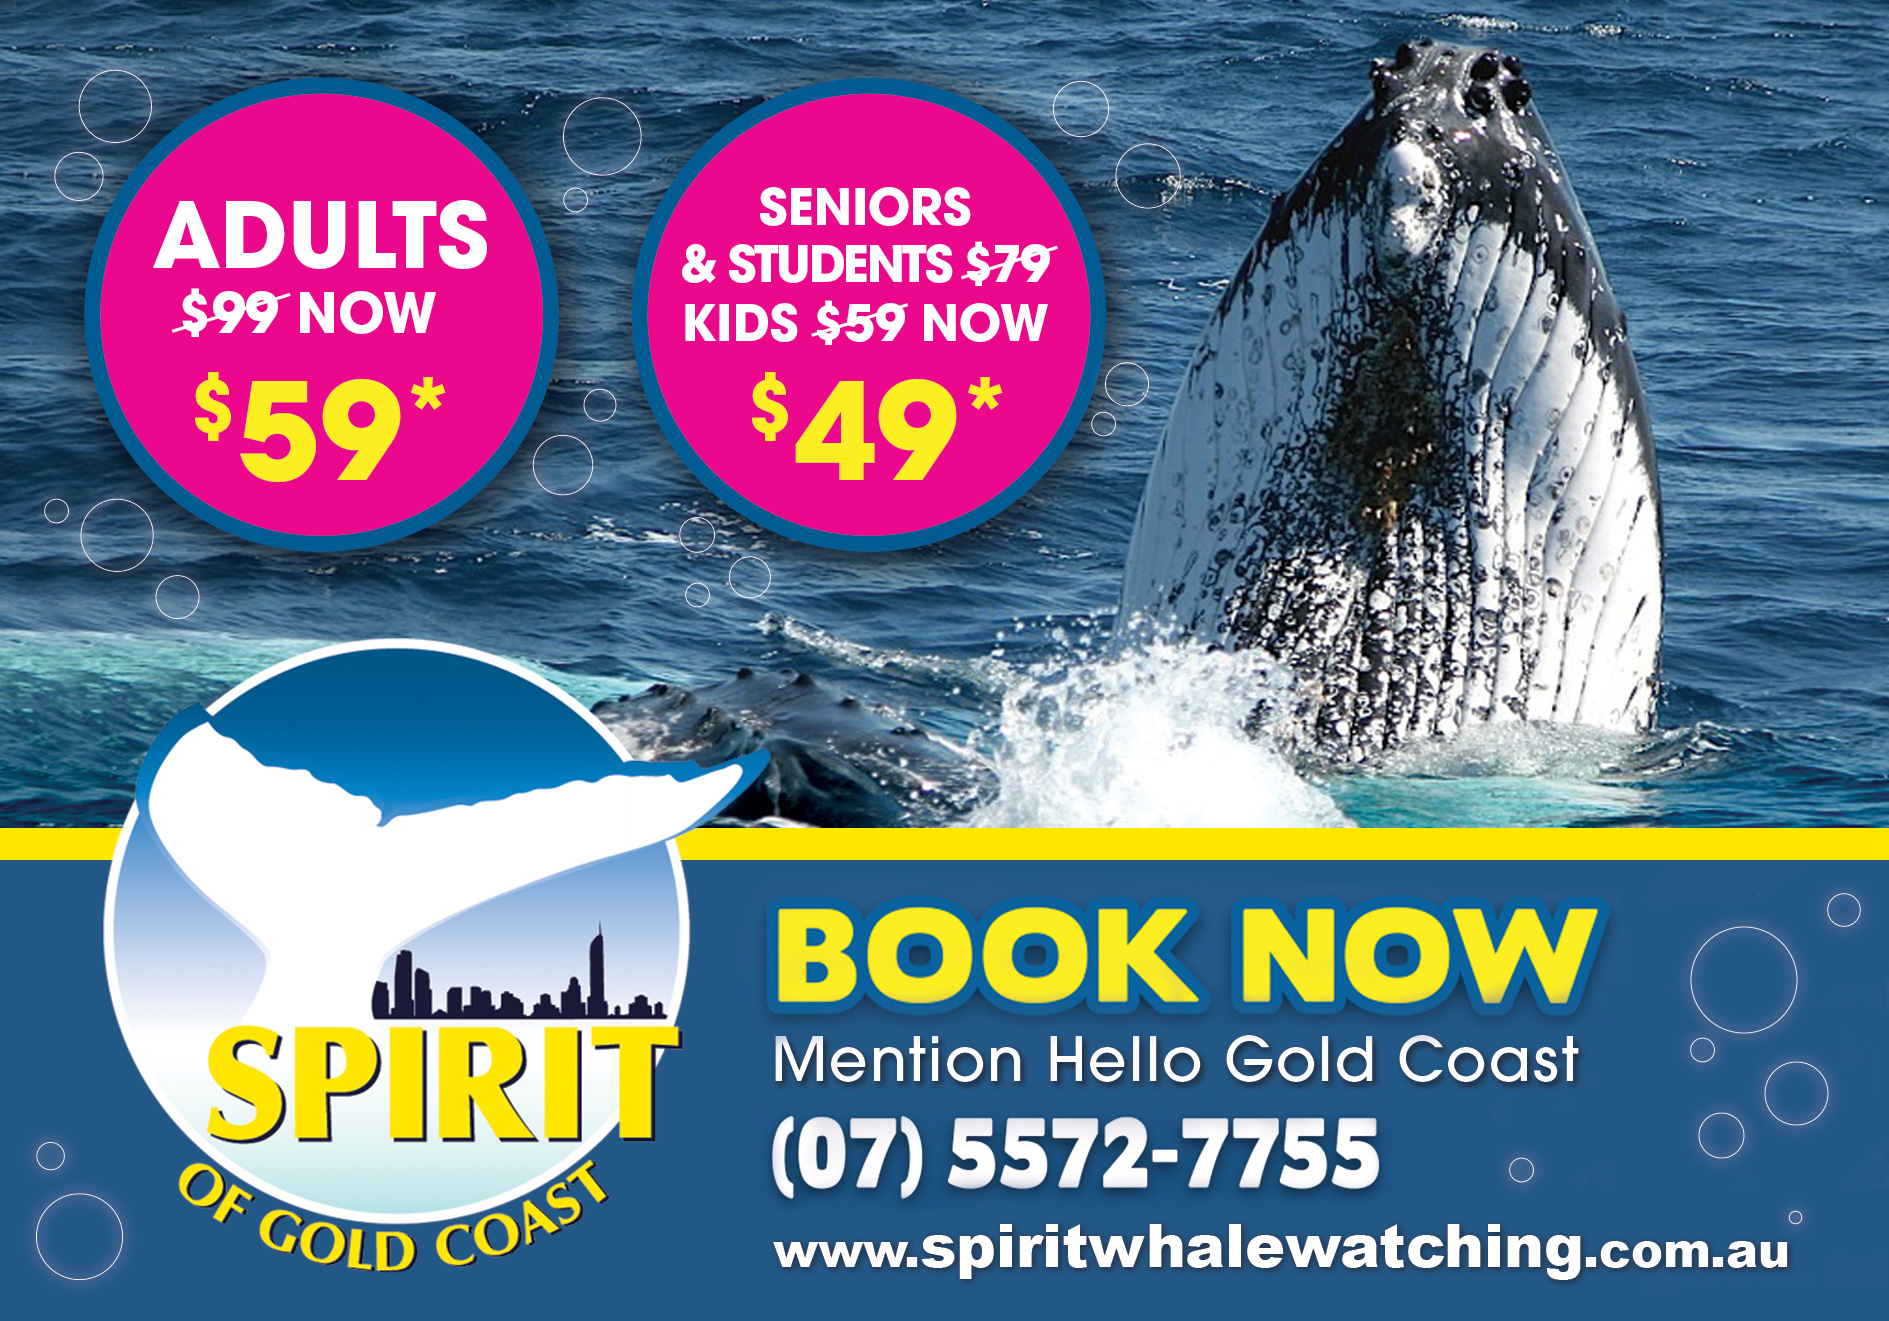 Spirit of Gold Coast Whale Watching Special Offer